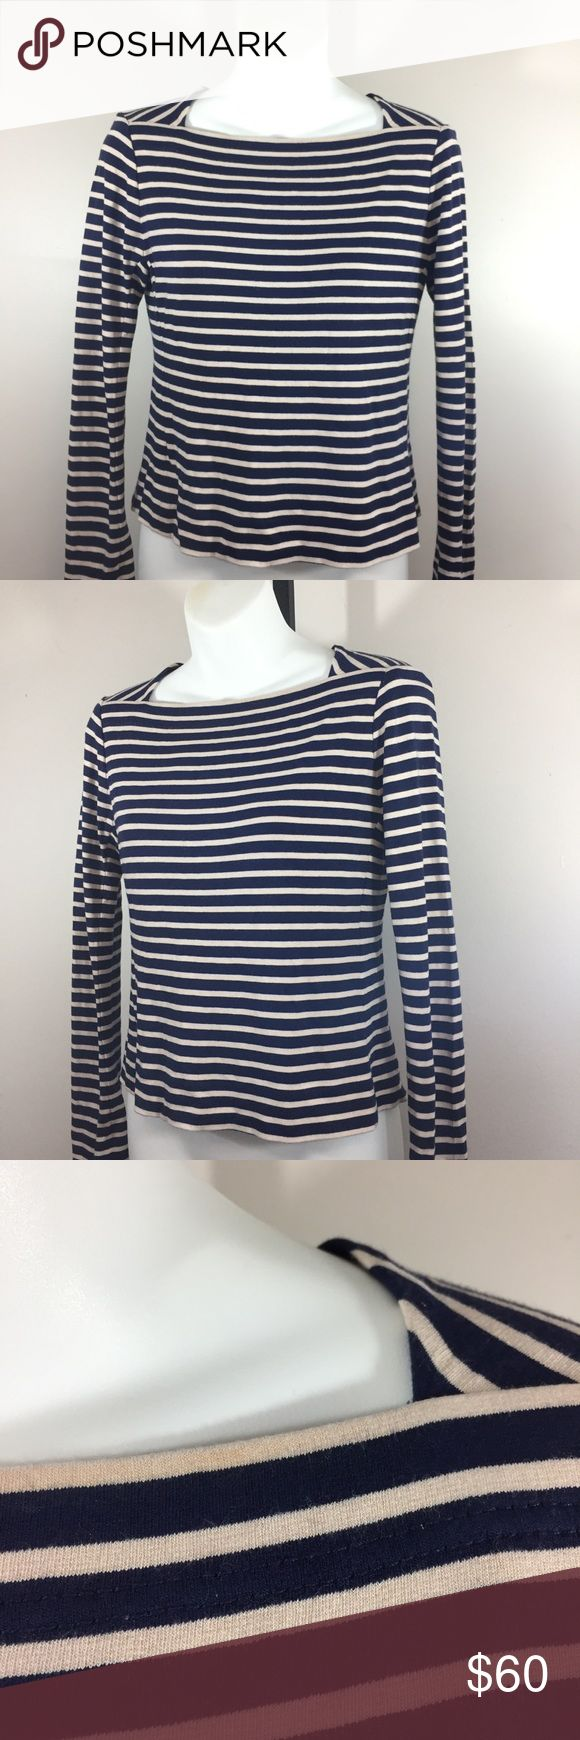 Tory Burch Naval Blue & White Striped Shirt XS Good used condition  One small light spot on the neck. Pictured  XS Blue & white  Bin O Tory Burch Tops